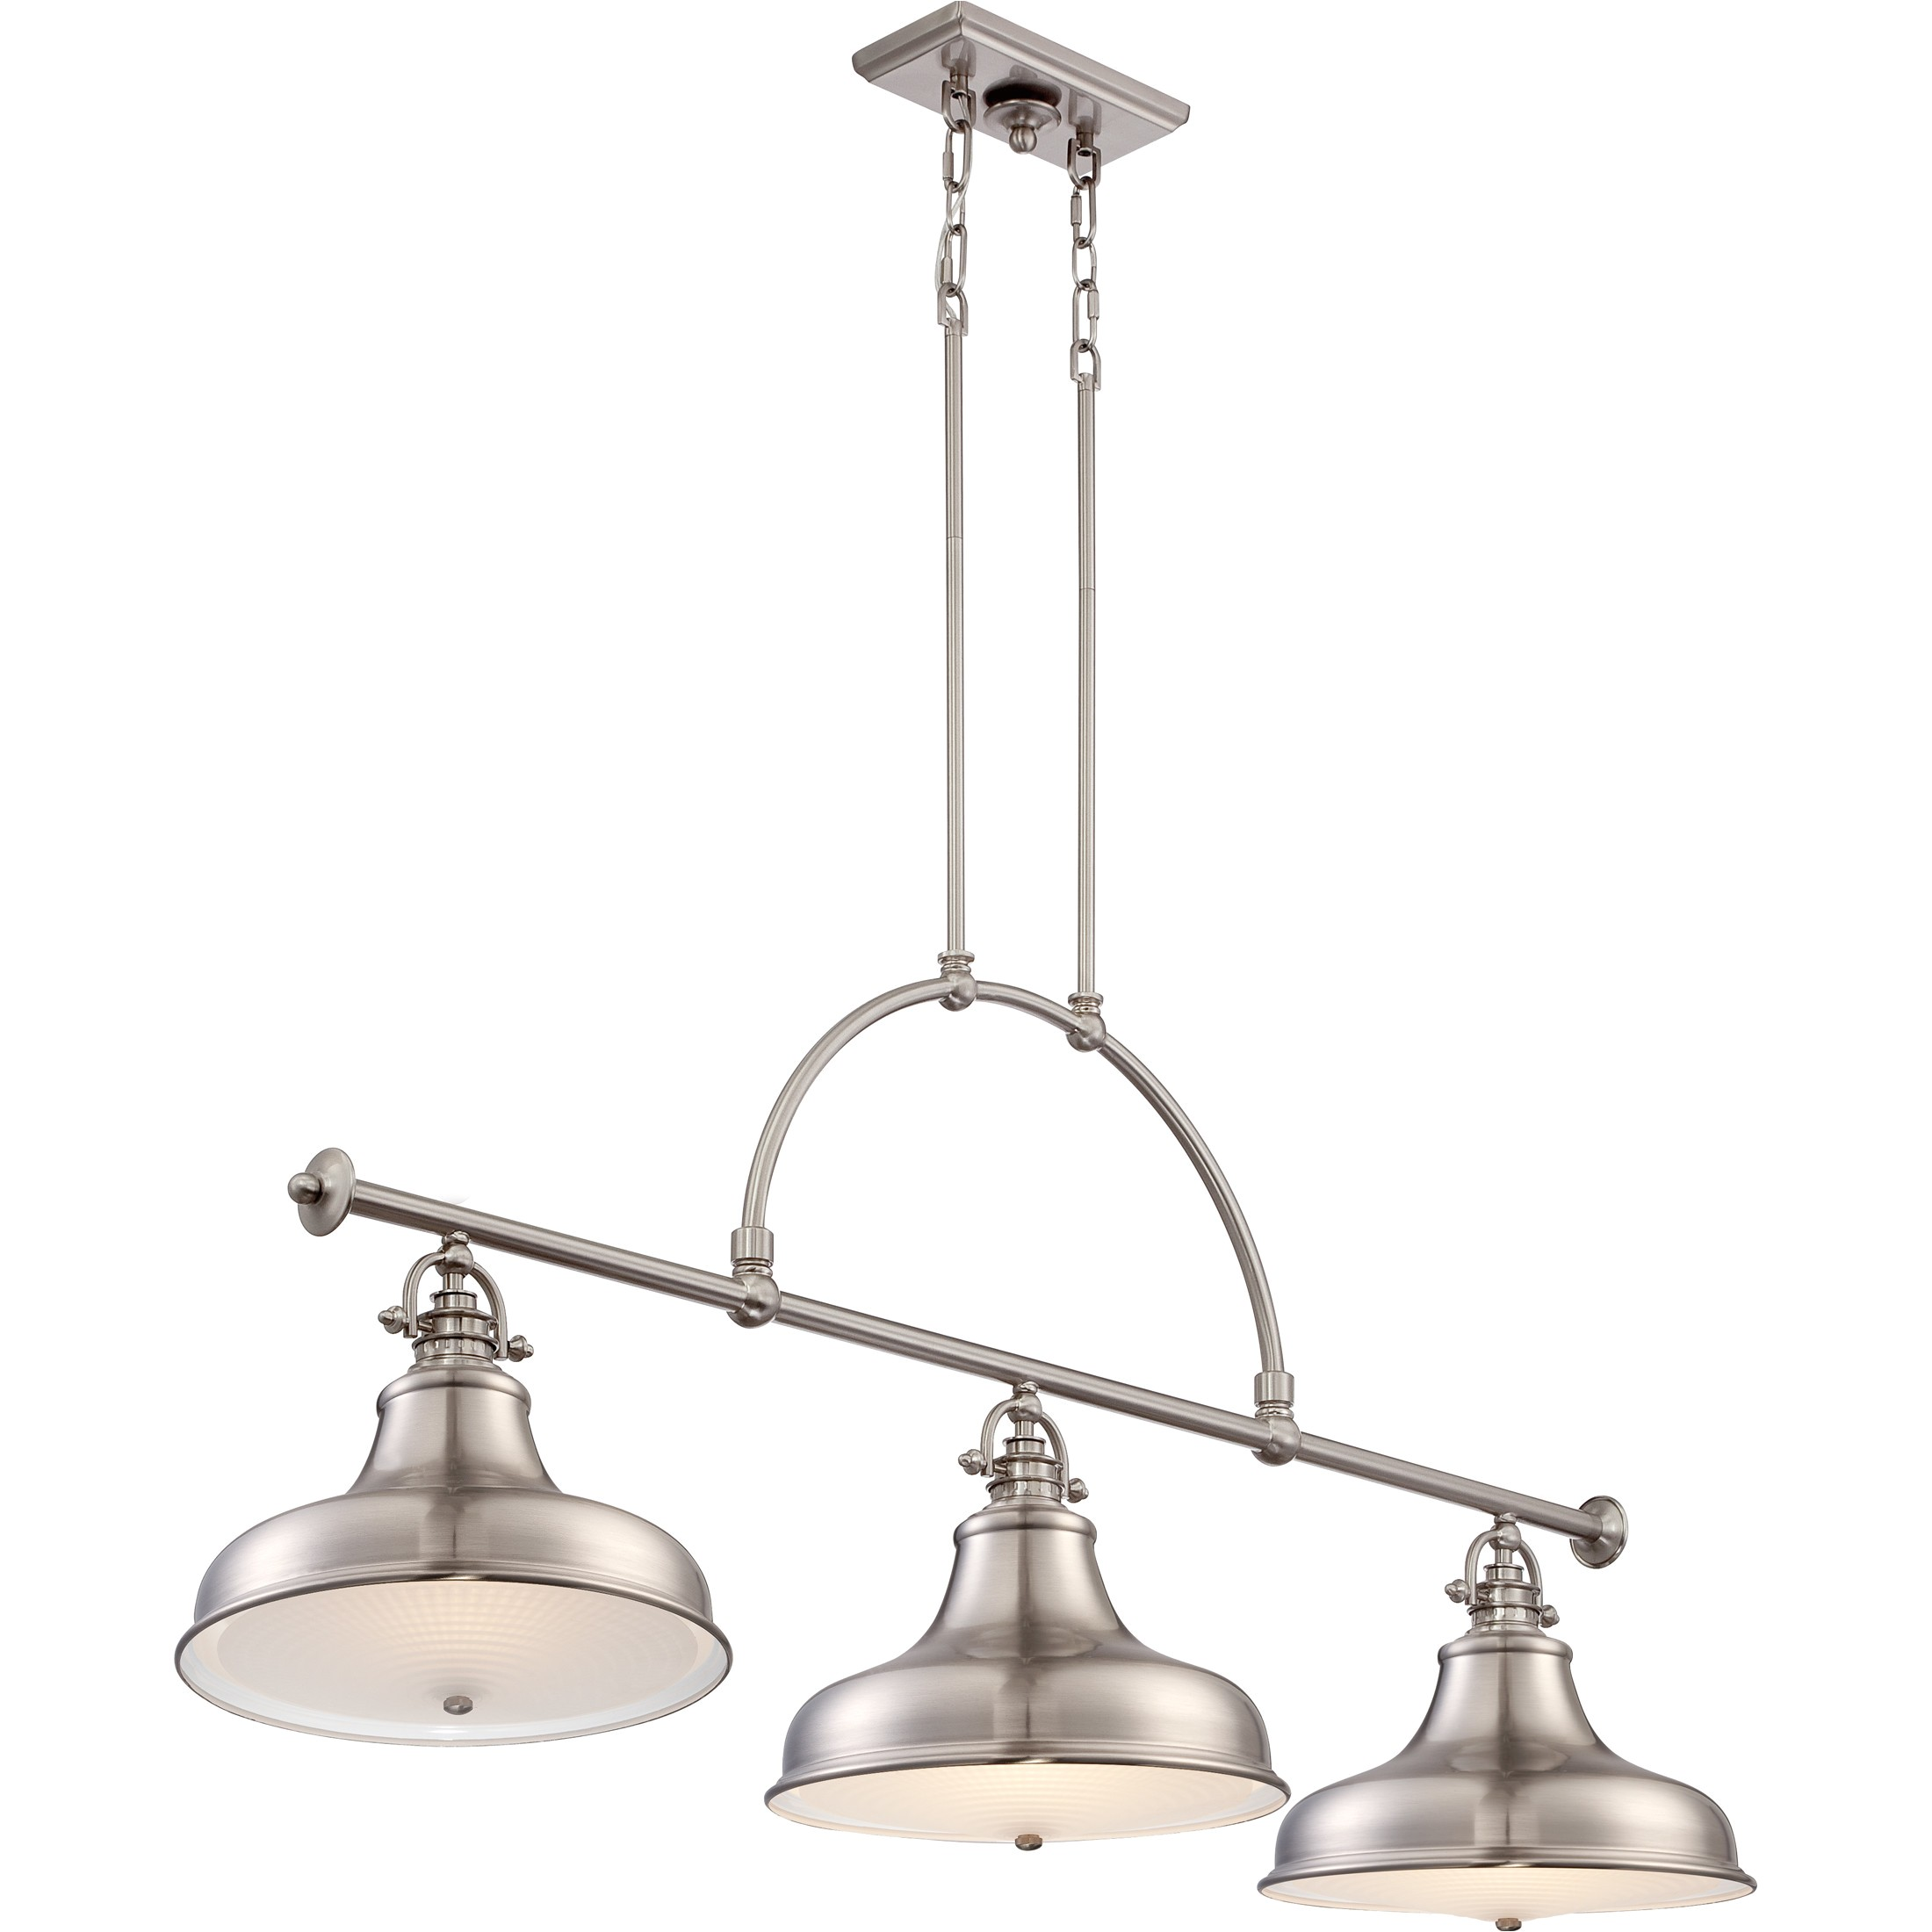 Trent Austin Design Lighting Trent Austin Design Cetona 3 Light Kitchen island Pendant